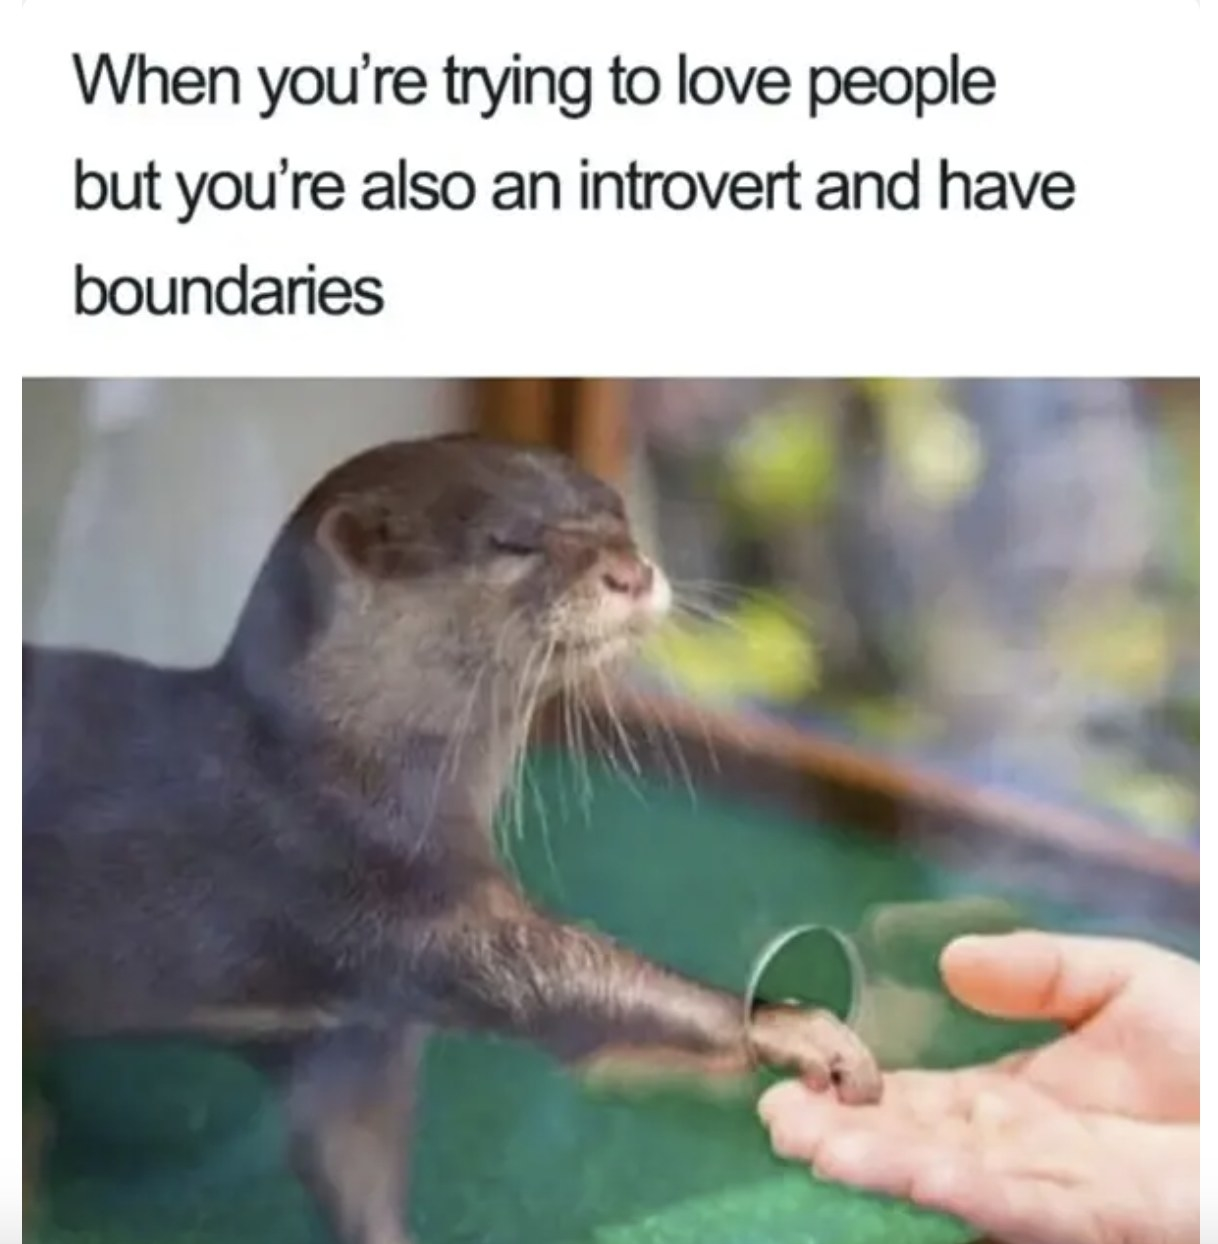 An otter behind glass putting its paw through a small hole to hold the hand of a human.